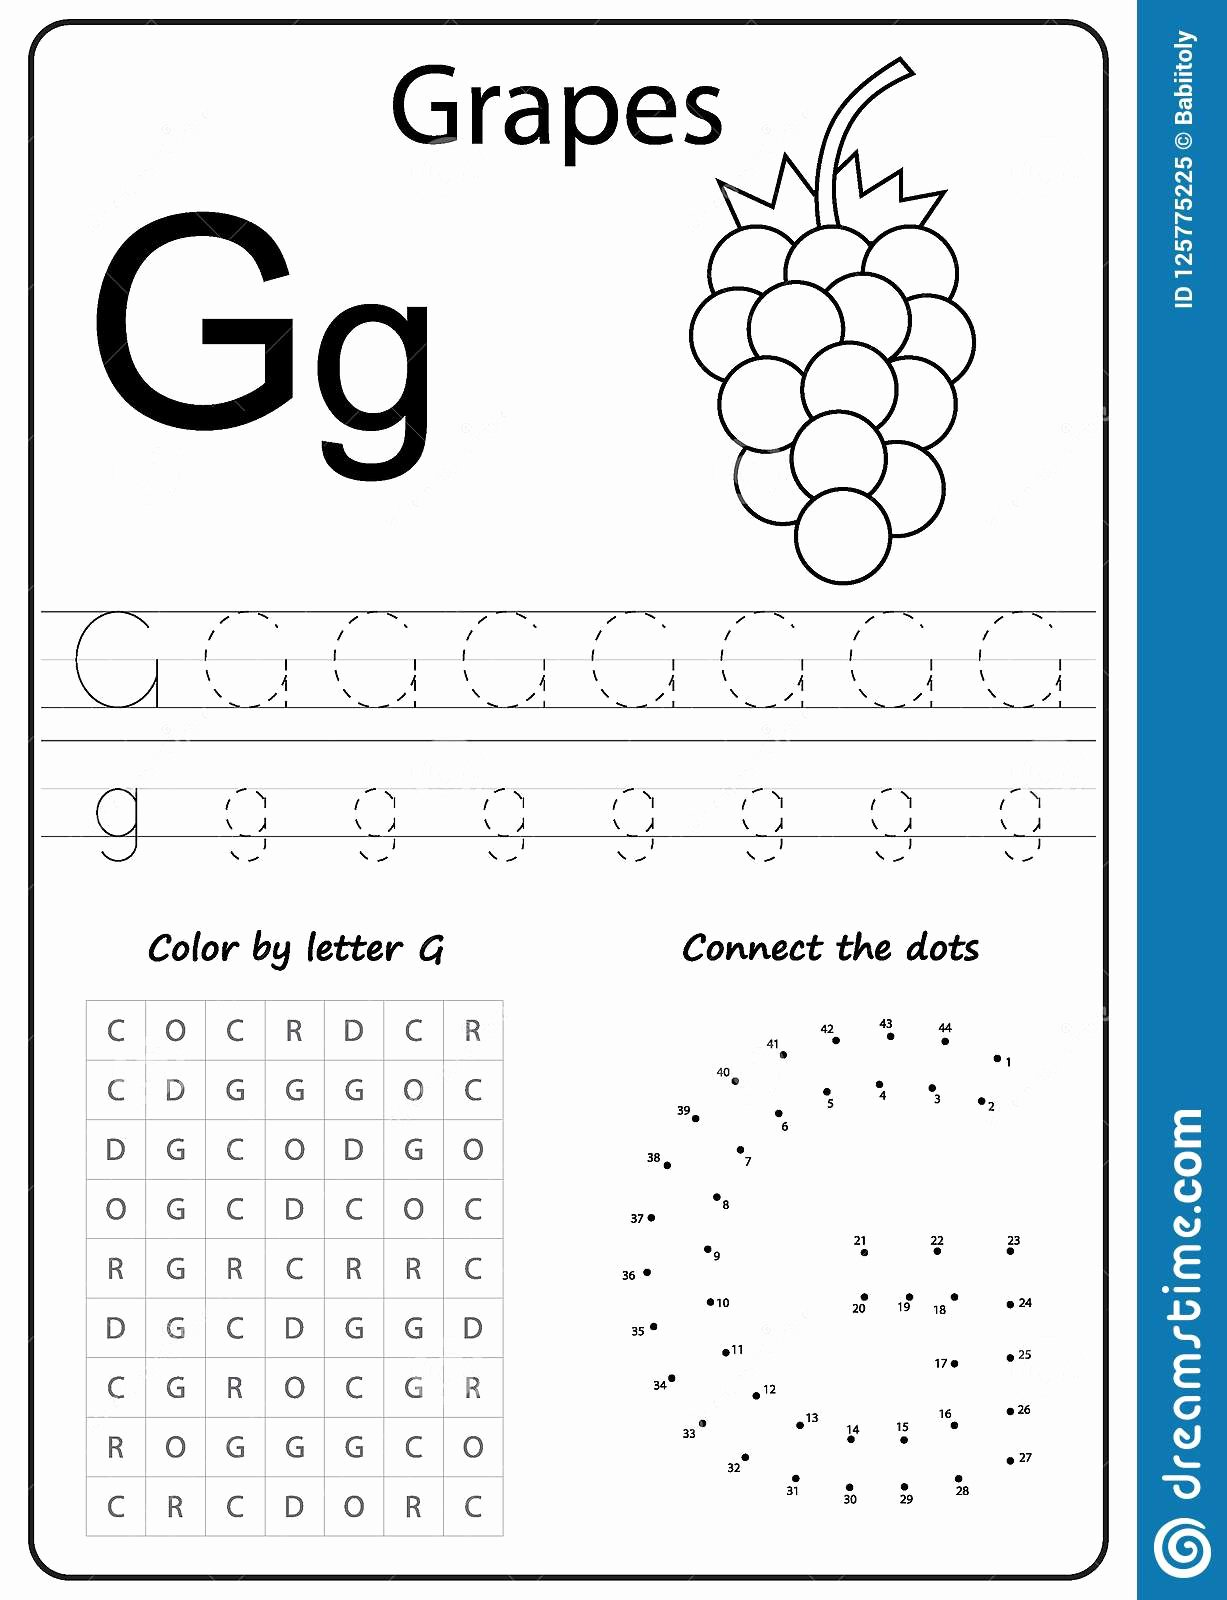 Free Printable Letter G Worksheets for Preschoolers Fresh Coloring Pages Free Printable Activity Pages for Kids Art